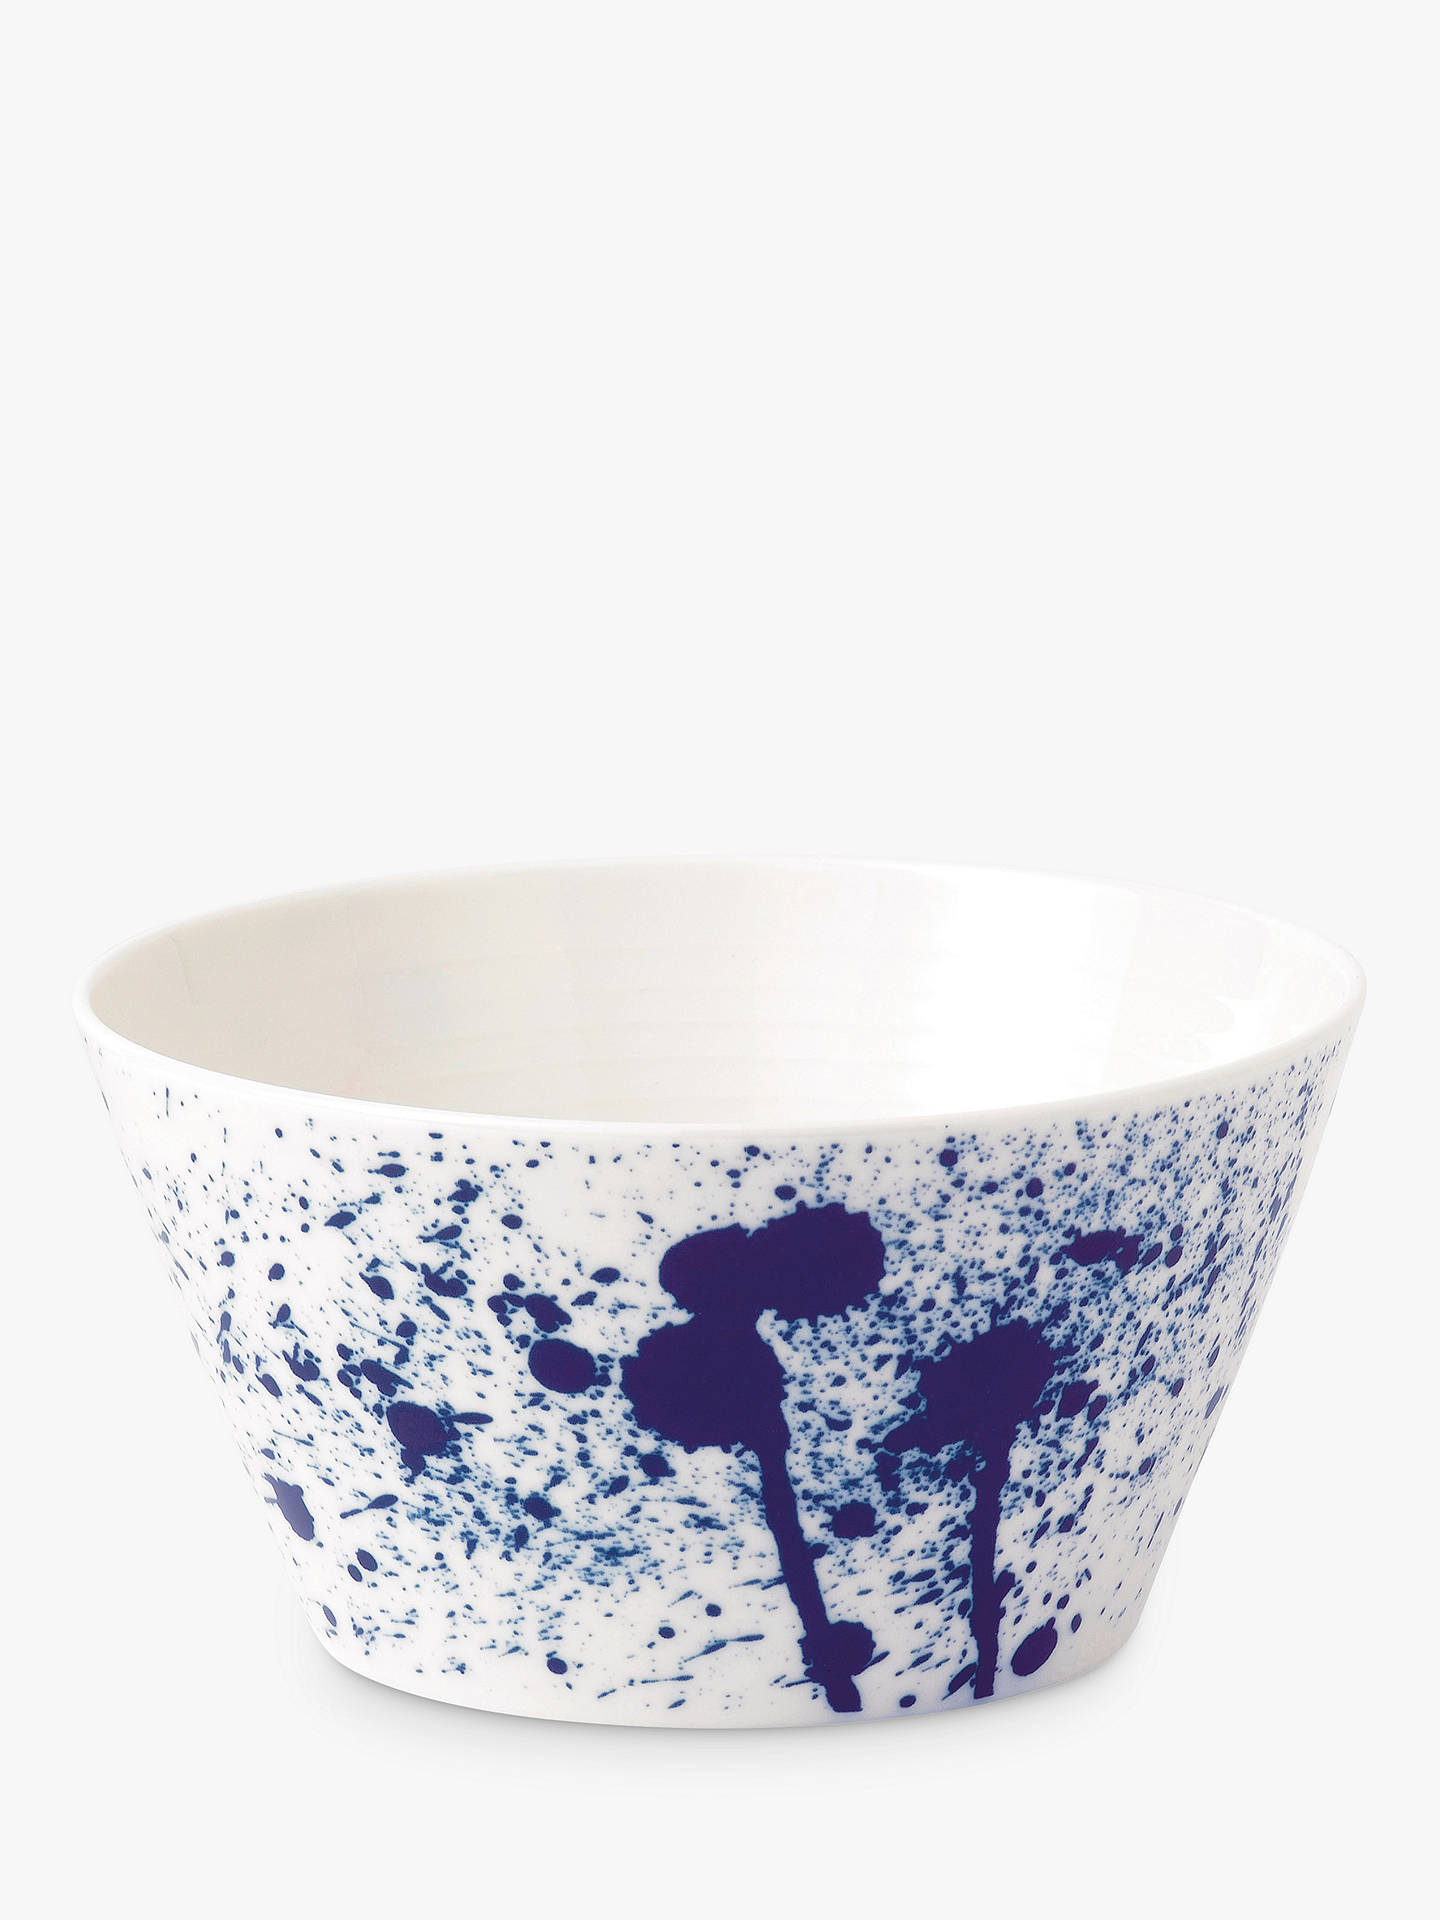 Buy Royal Doulton Pacific Porcelain Cereal Bowl, Splash, 15cm, Blue/White Online at johnlewis.com